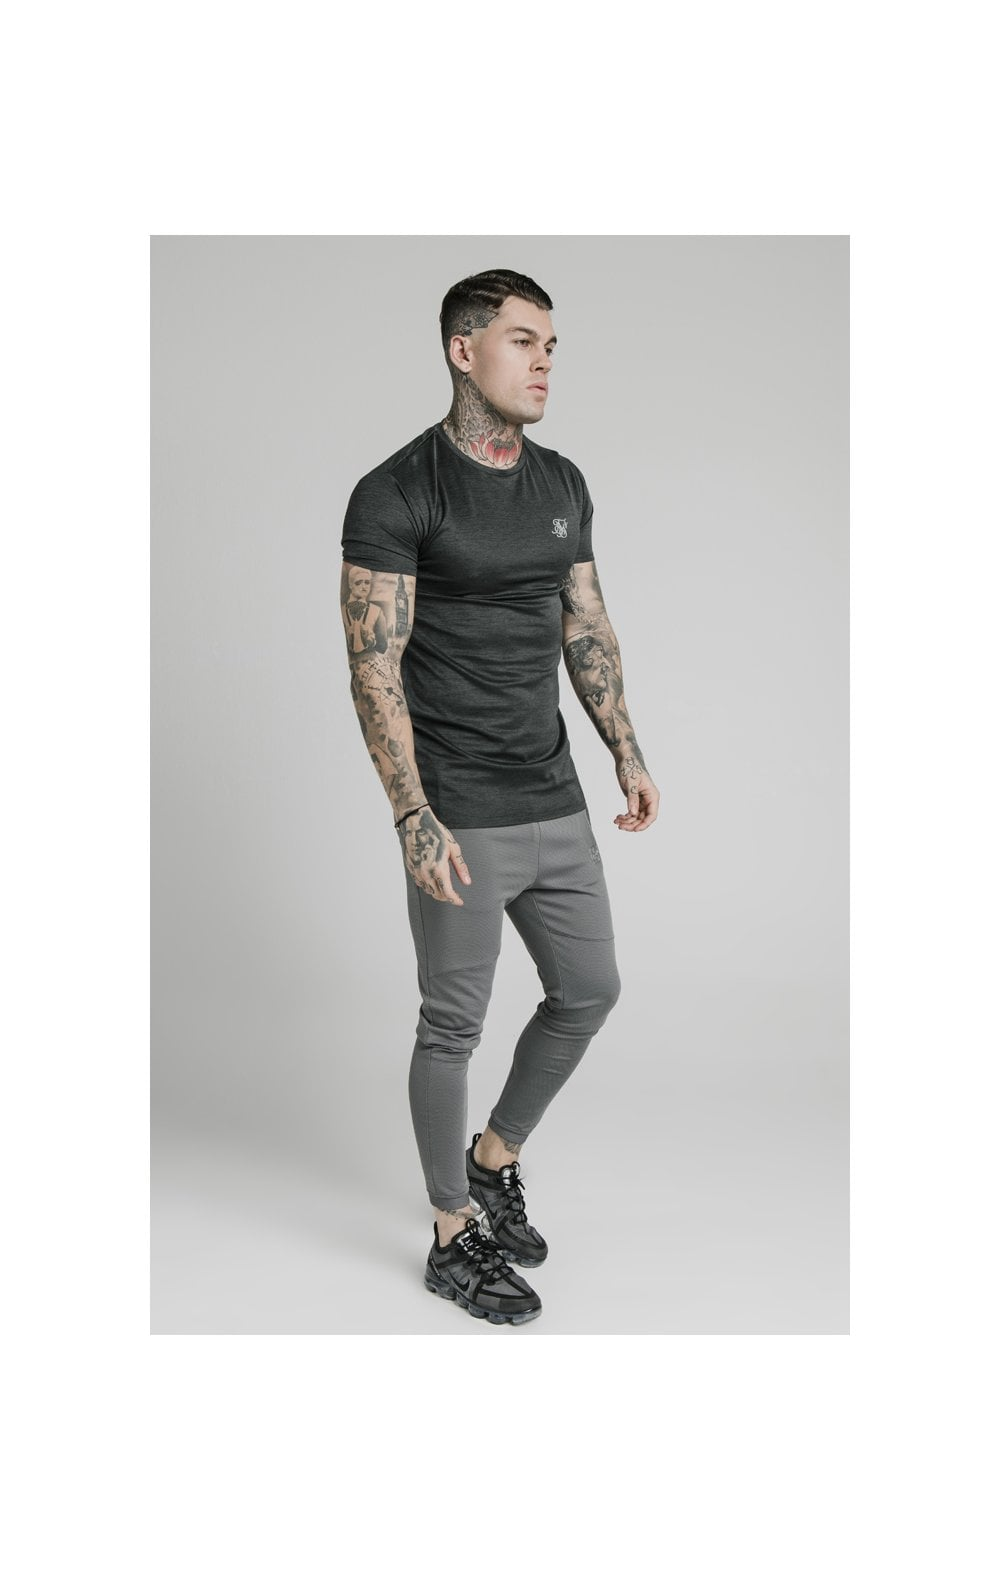 SikSilk Active Straight Hem Gym Tee - Charcoal Marl (4)